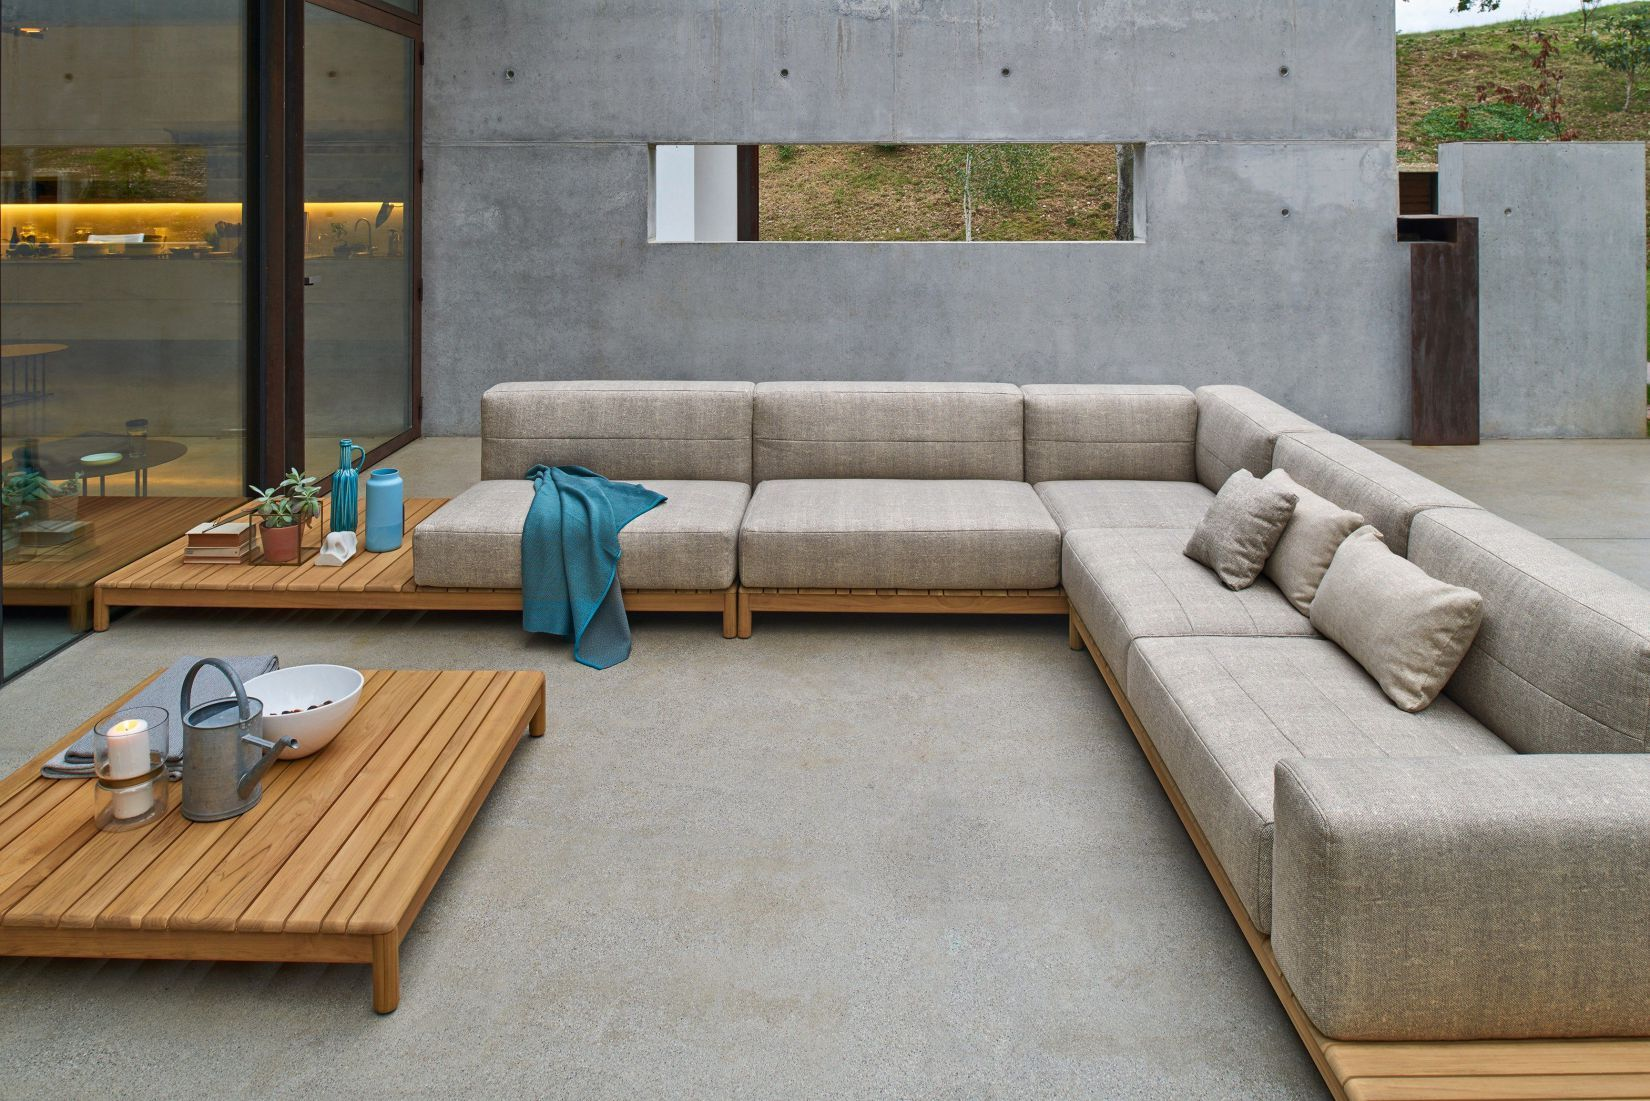 100 Modern Sectional Sofas And Couch That You Will Love Modern Sofa Sectional Wooden Sofa Designs Sunroom Furniture